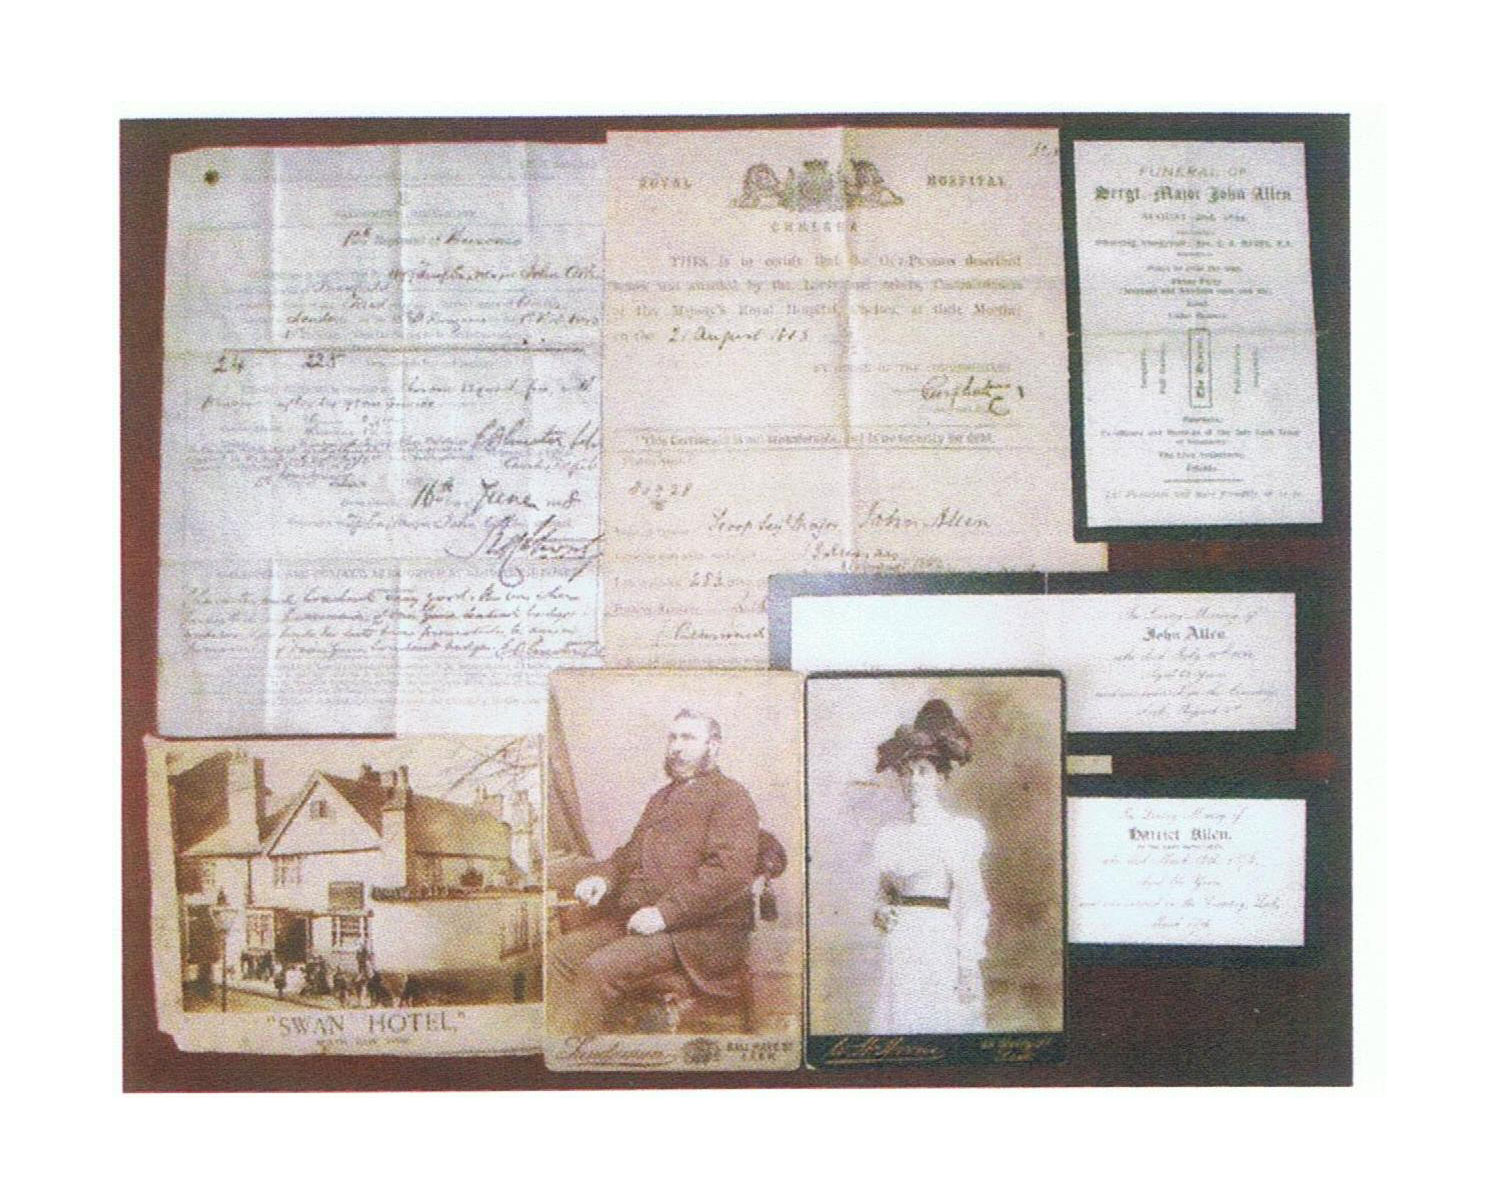 Items relating to John Allen, 13th Light Dragoons, auctioned in 2013. Click to enlarge.